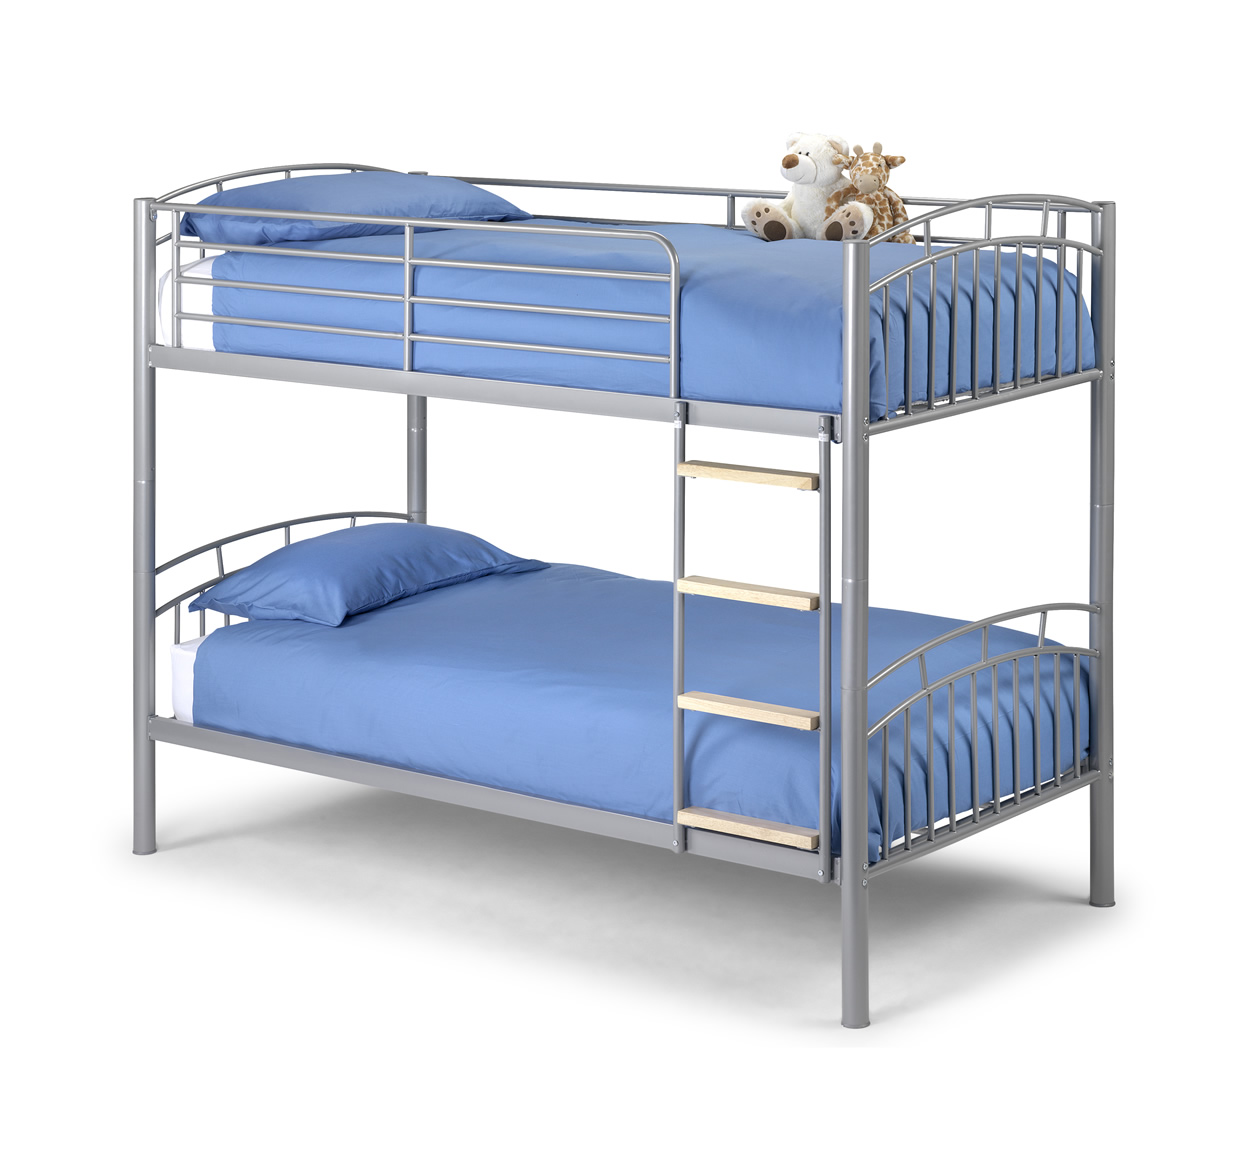 Bunk bed kids 3ft metal silver childrens bunk bed frame for Childrens iron beds